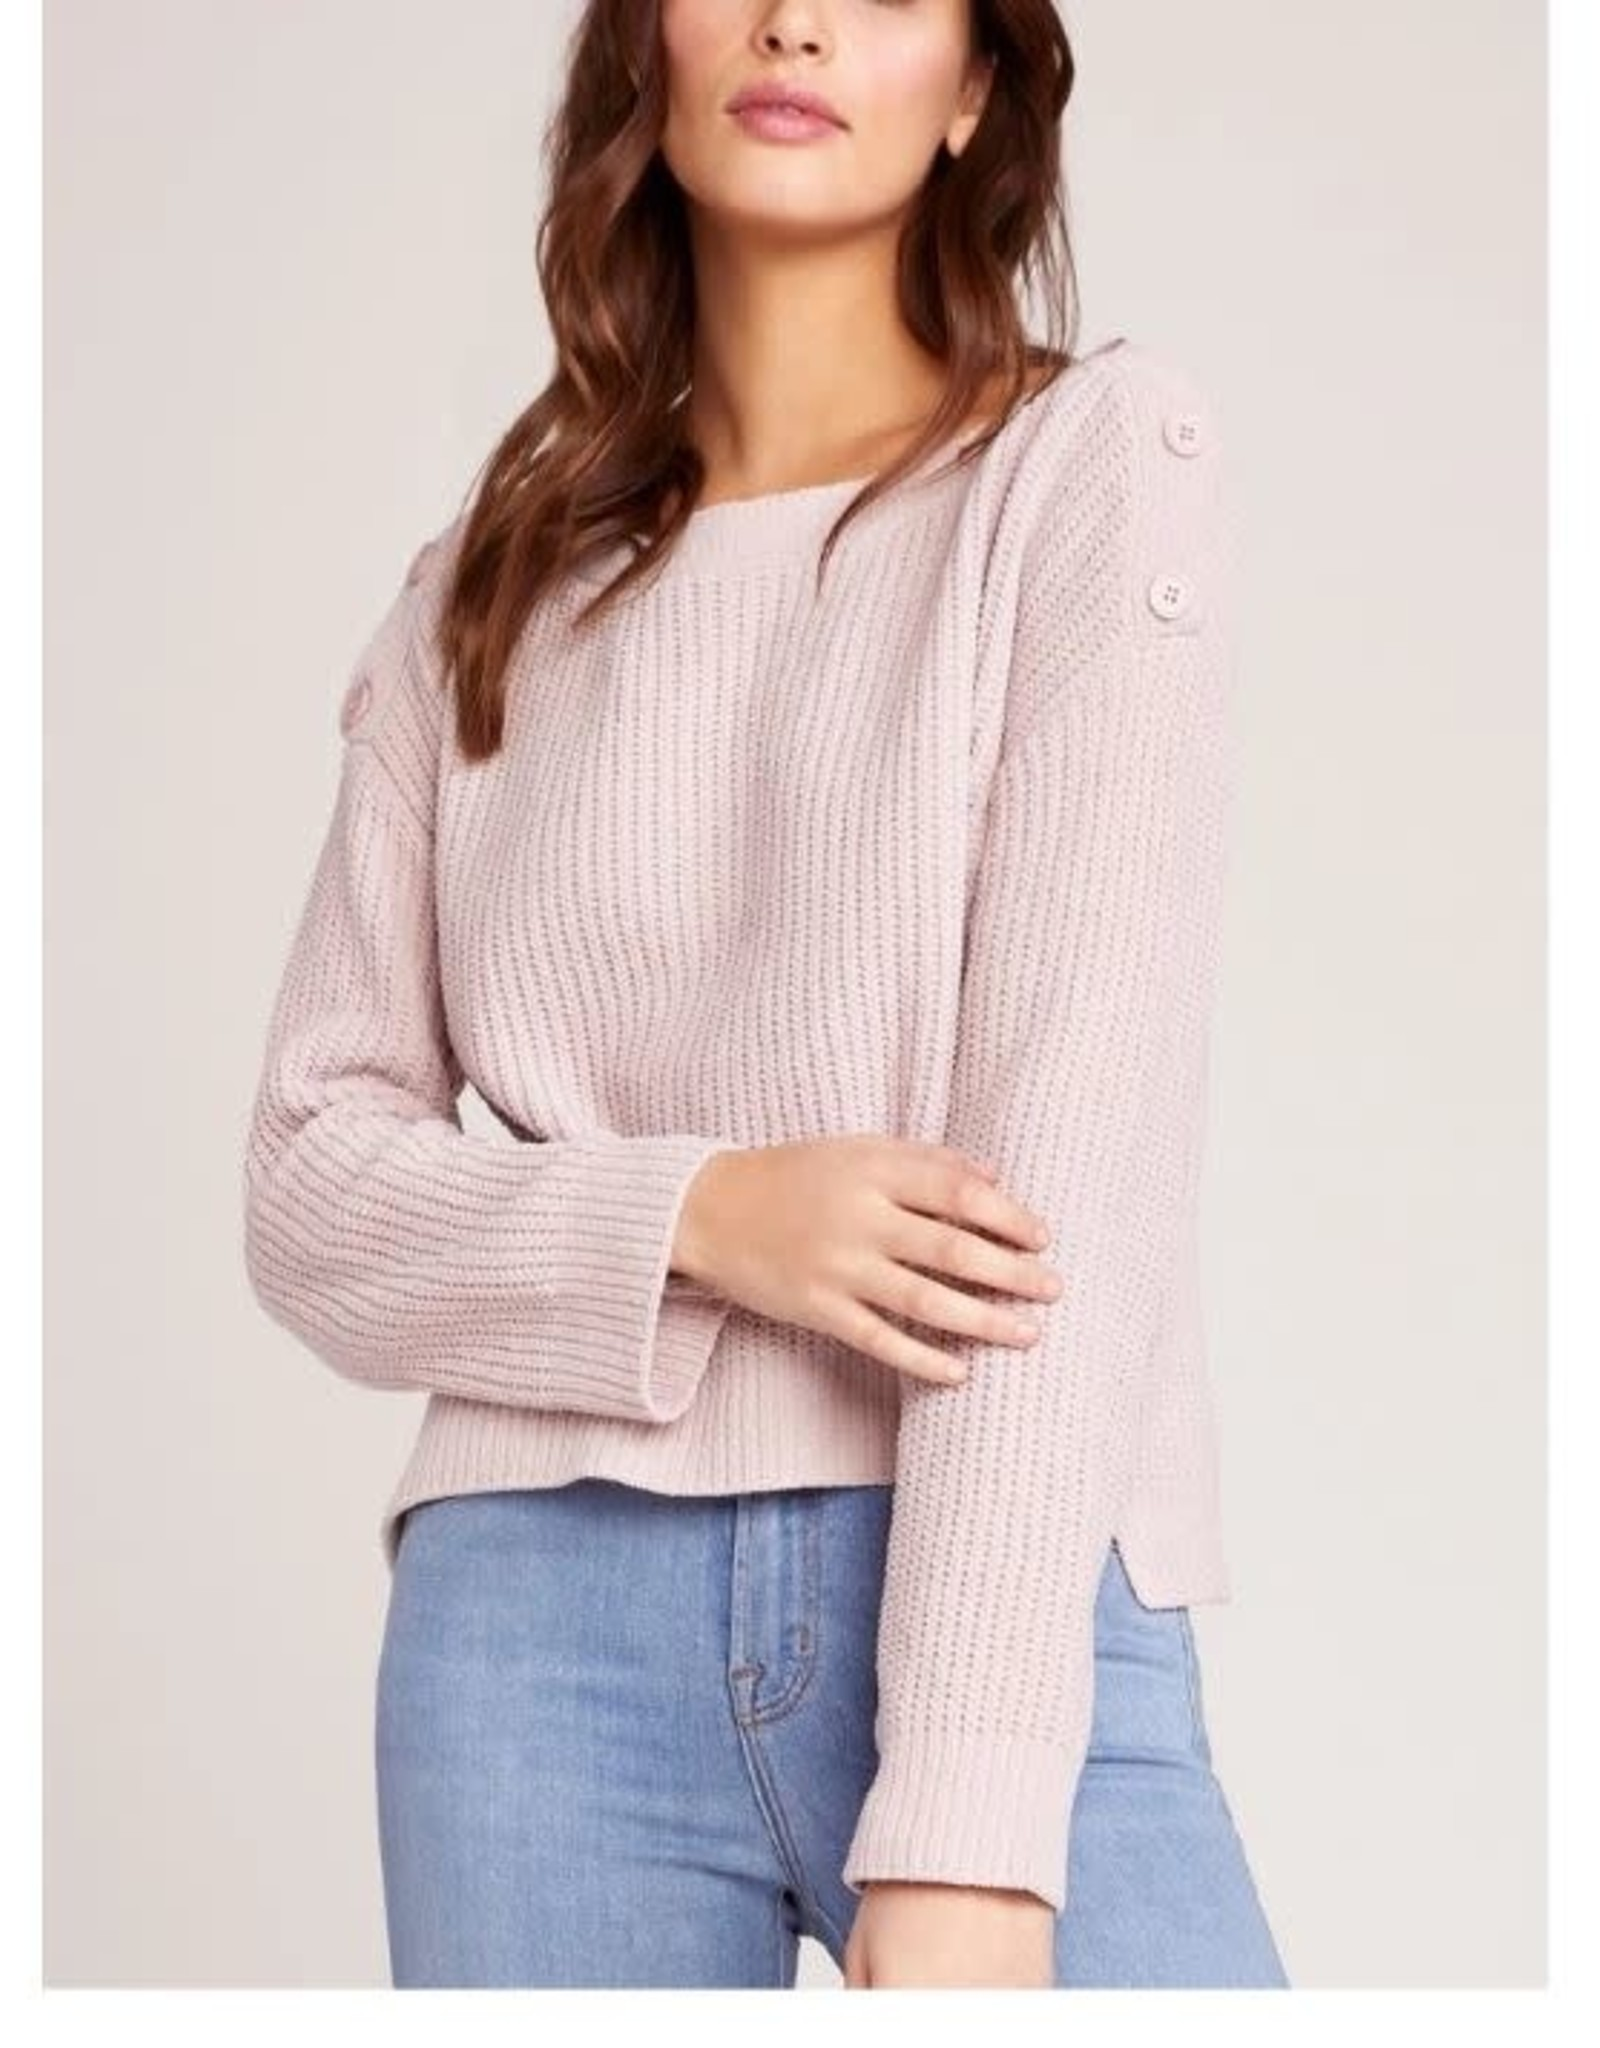 BB Dakota Pink Chenille Sweater w/Button Detail Shoulder